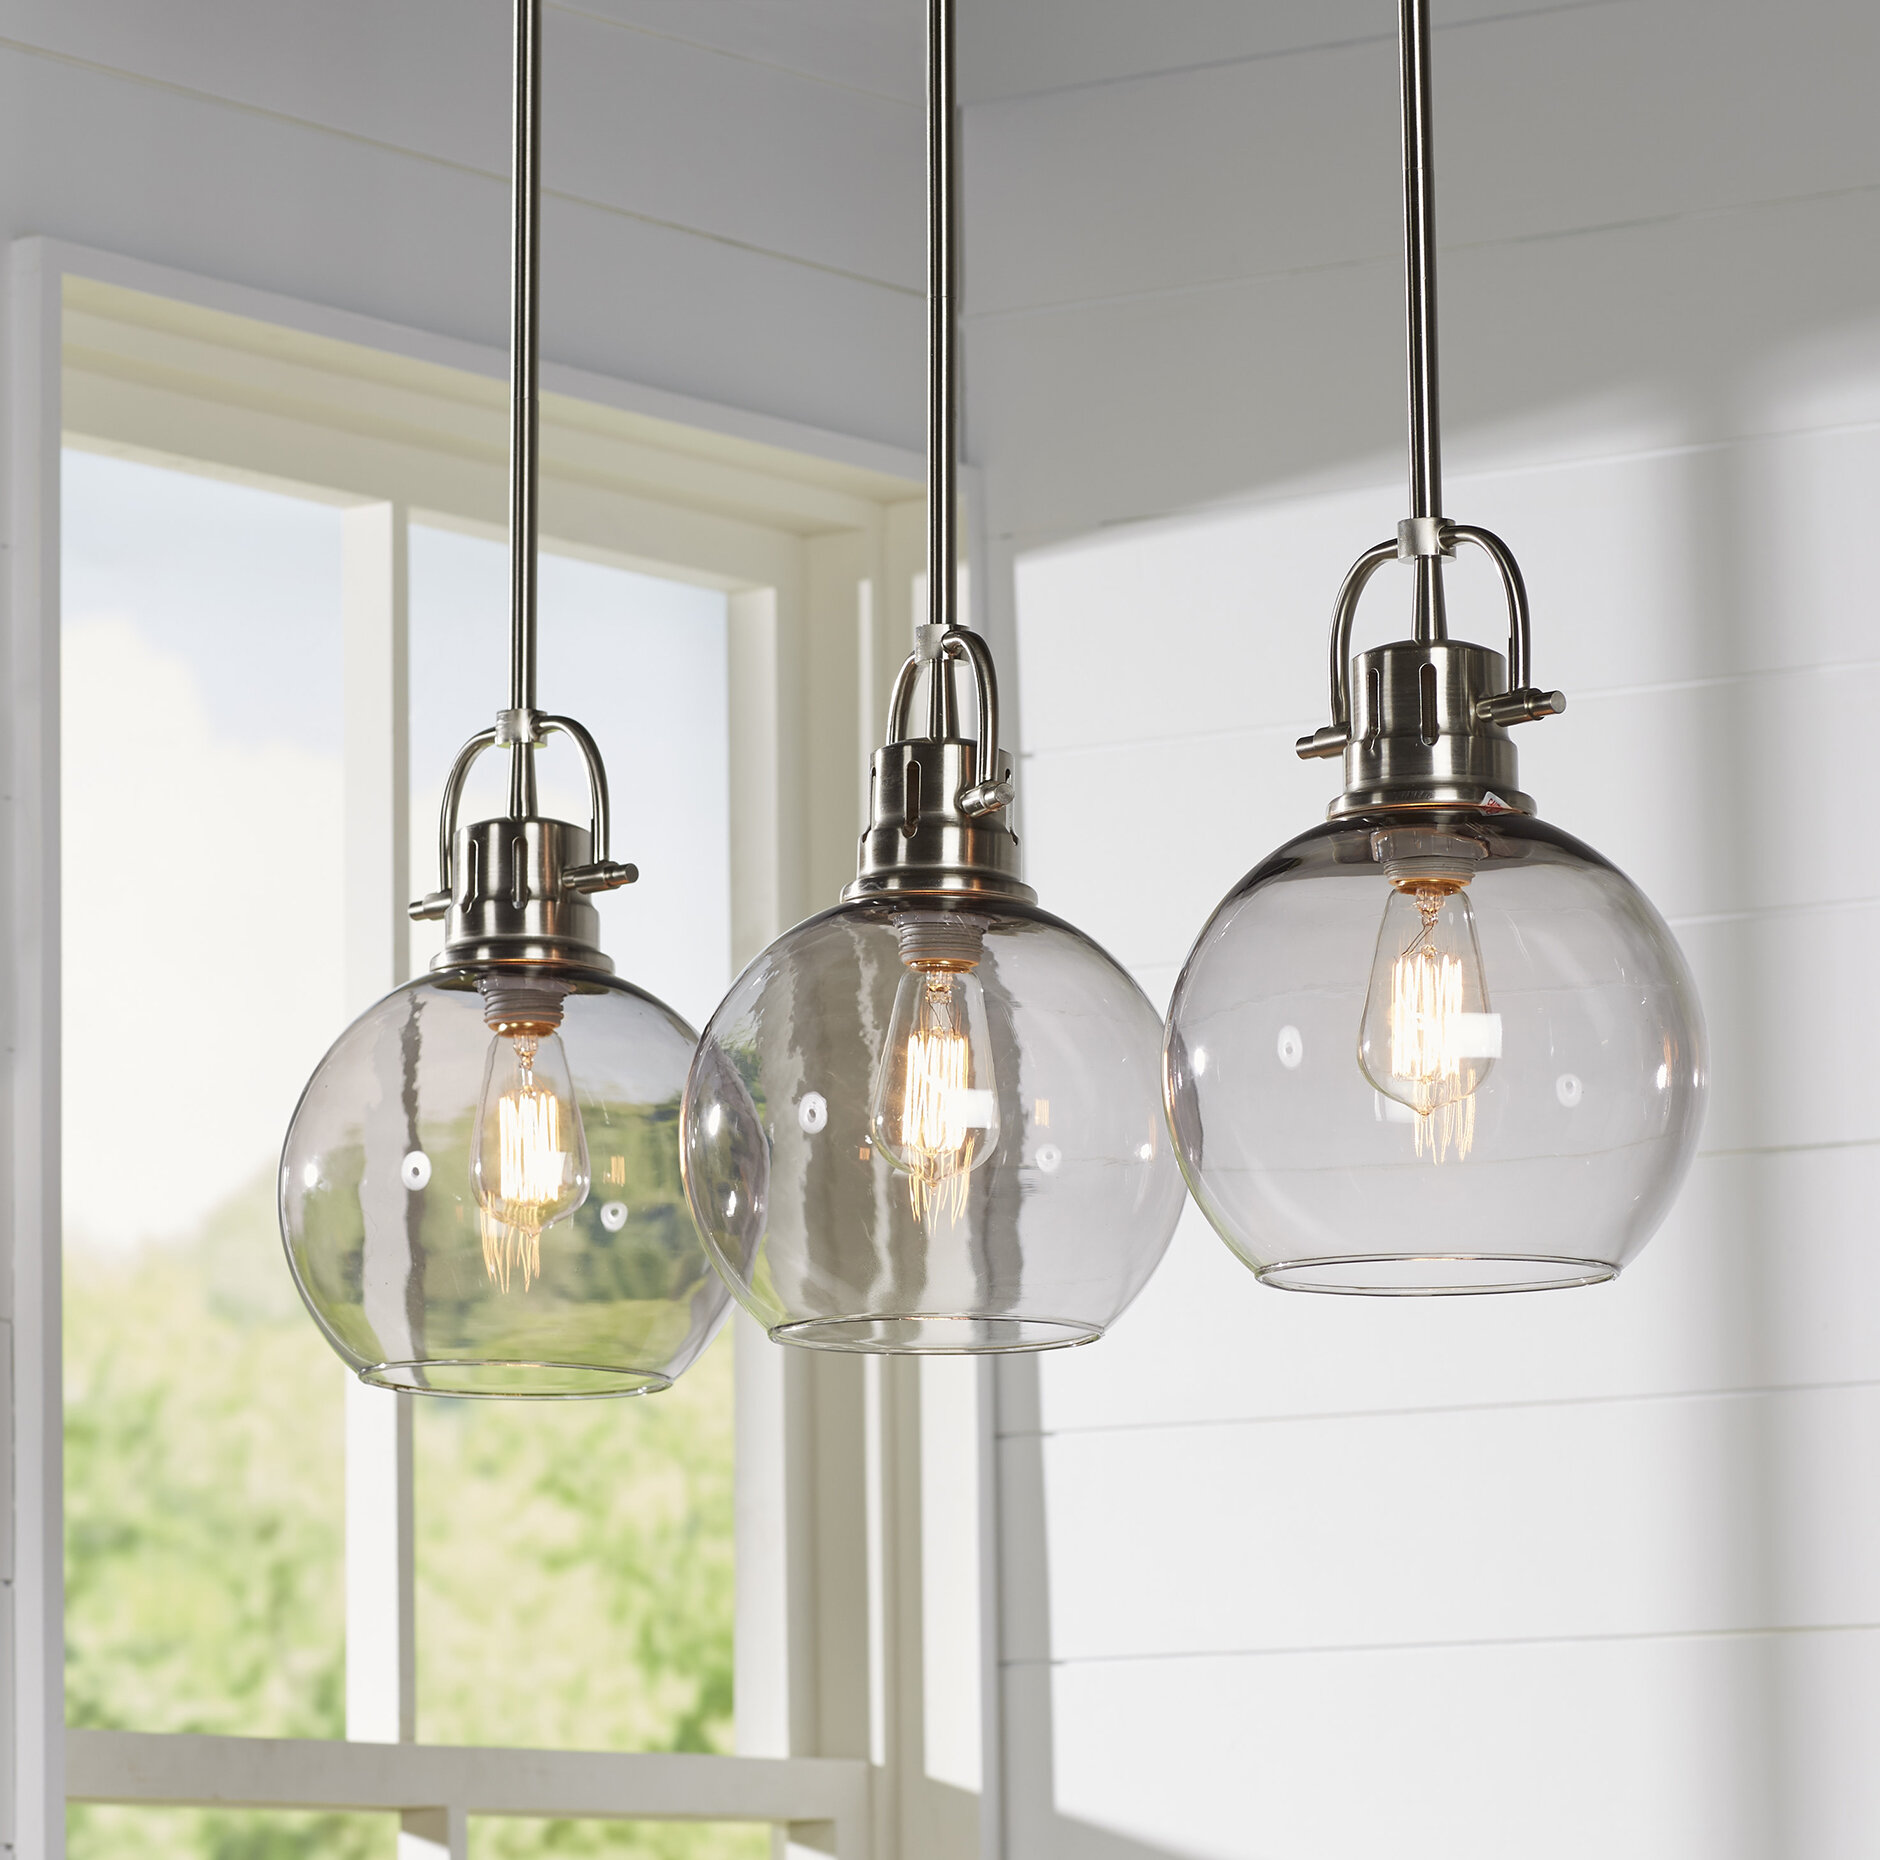 lighting kitchen pendant island scheme industrial modern of farmhouse